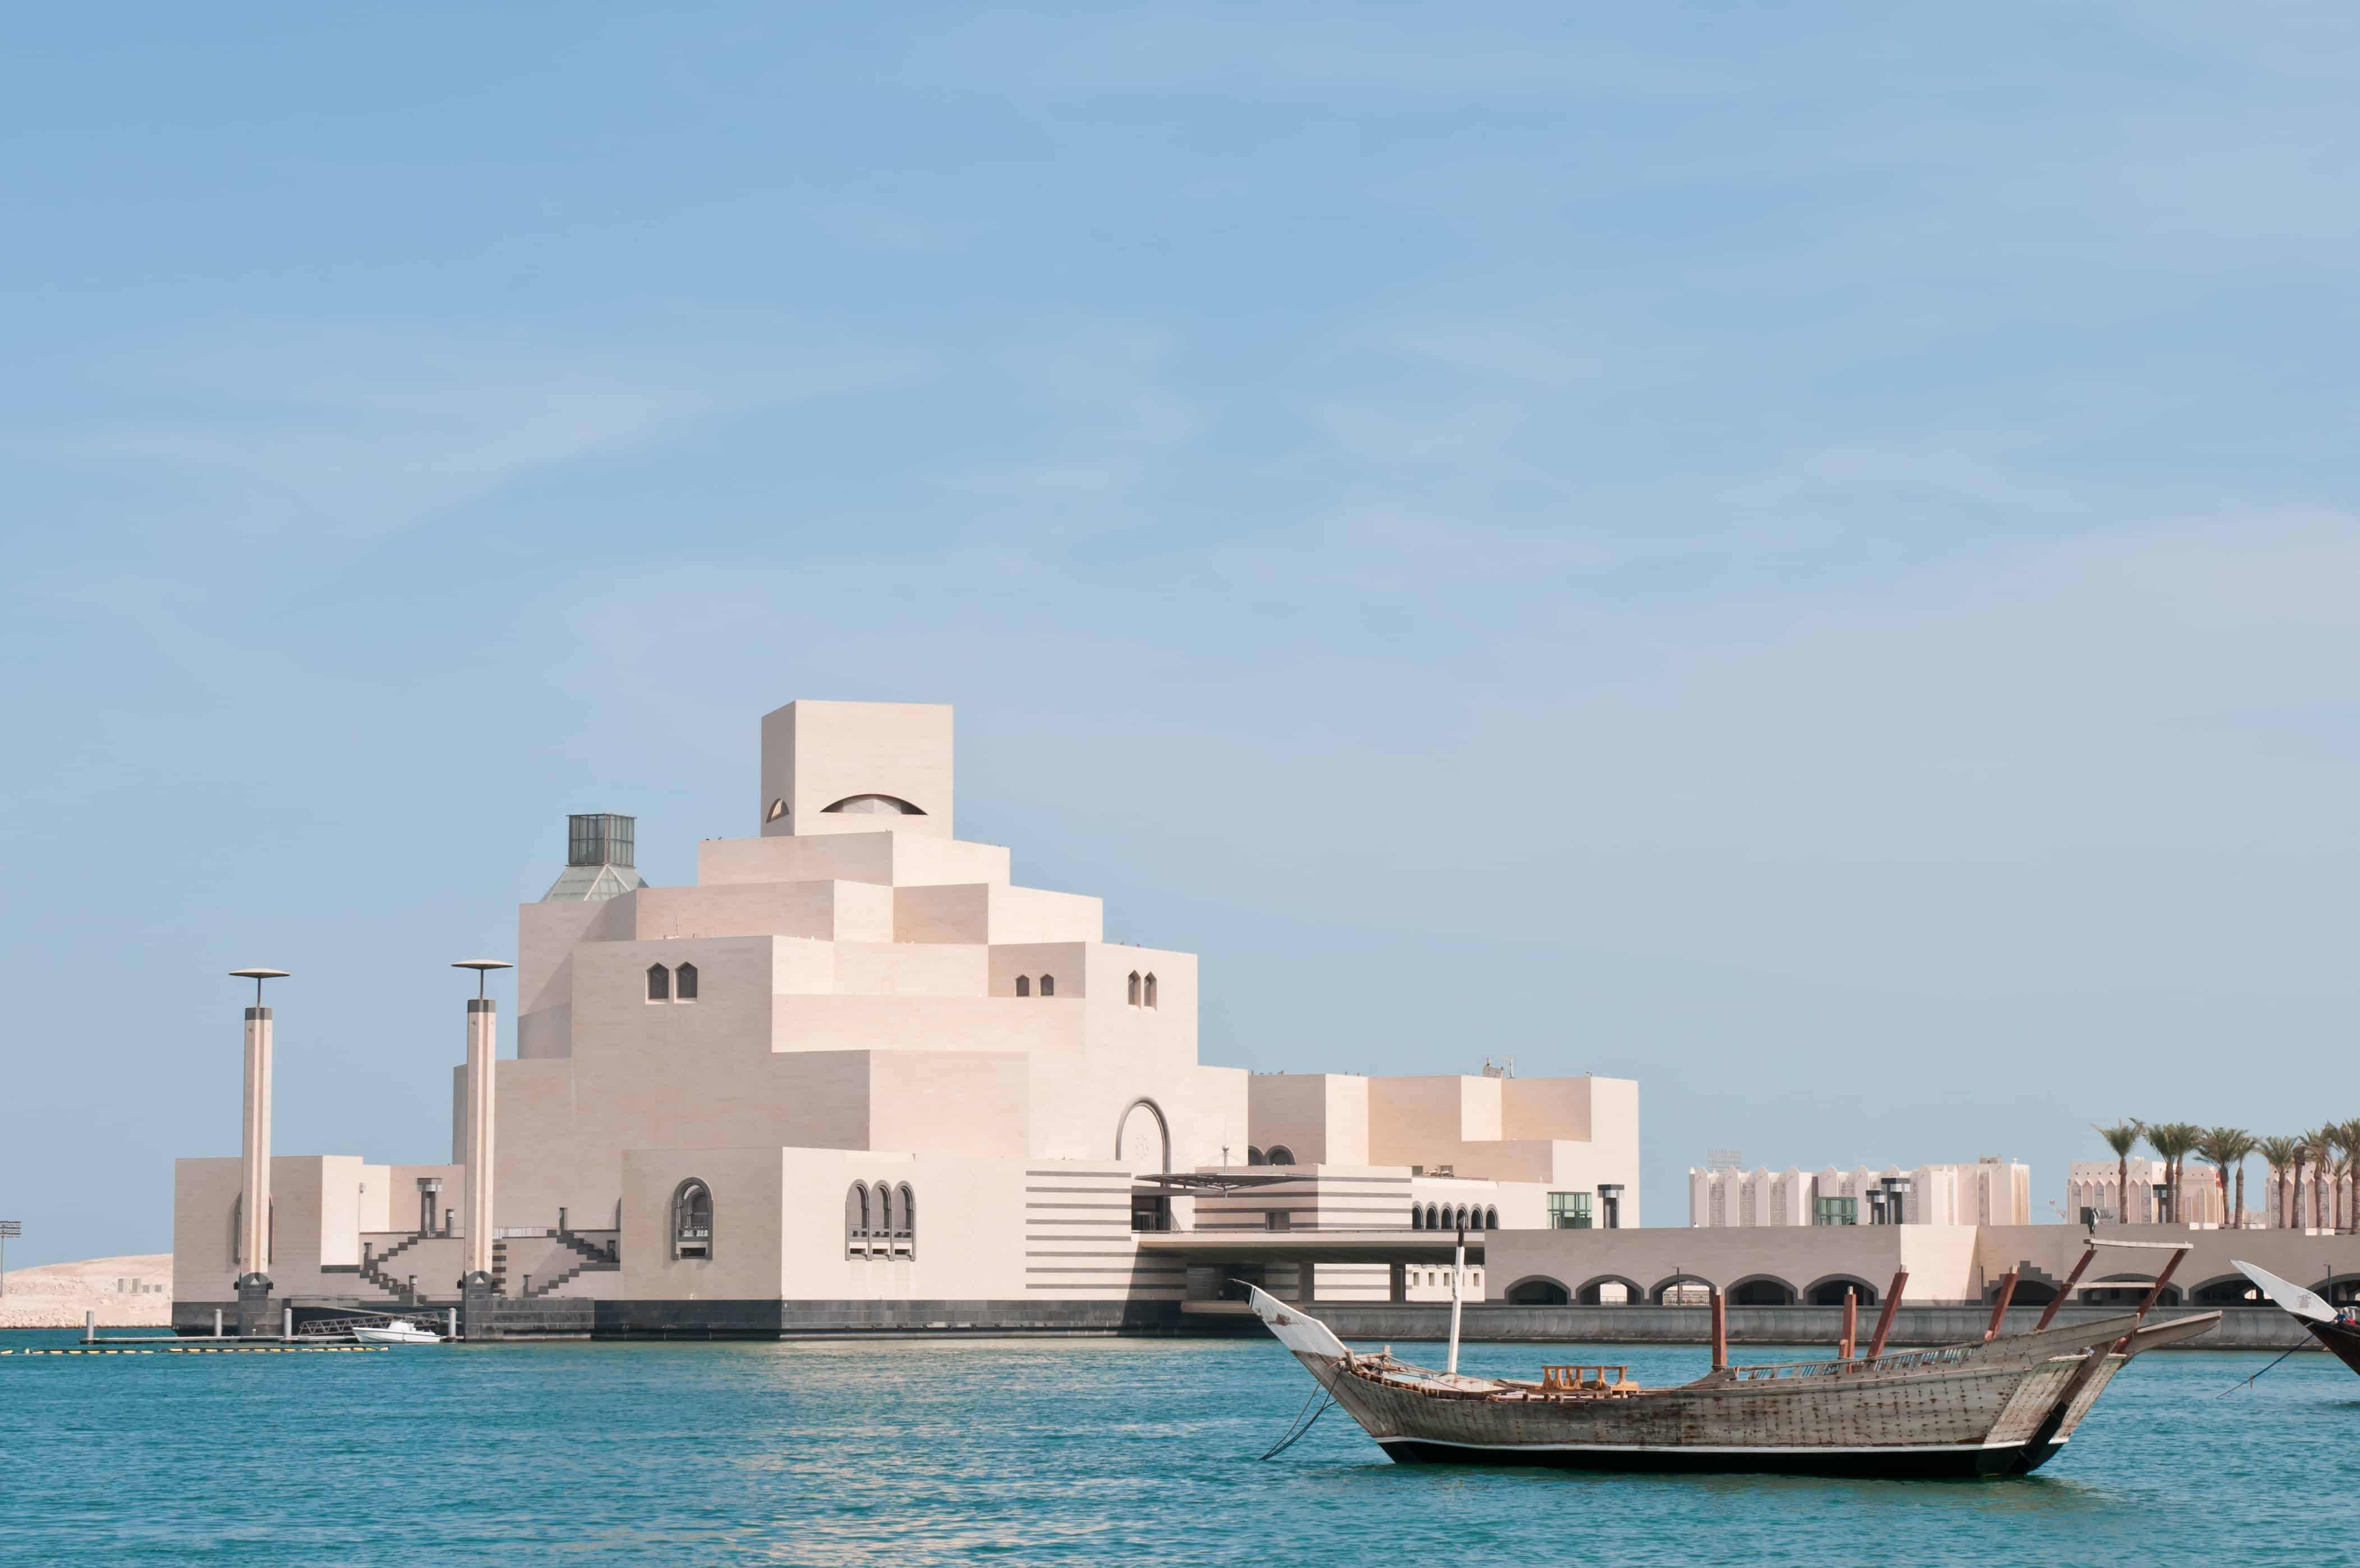 Comtrol in Conjunction with Navtech Security Systems Creates Perimeter Security for Museum of Islamic Art in Doha, Qatar